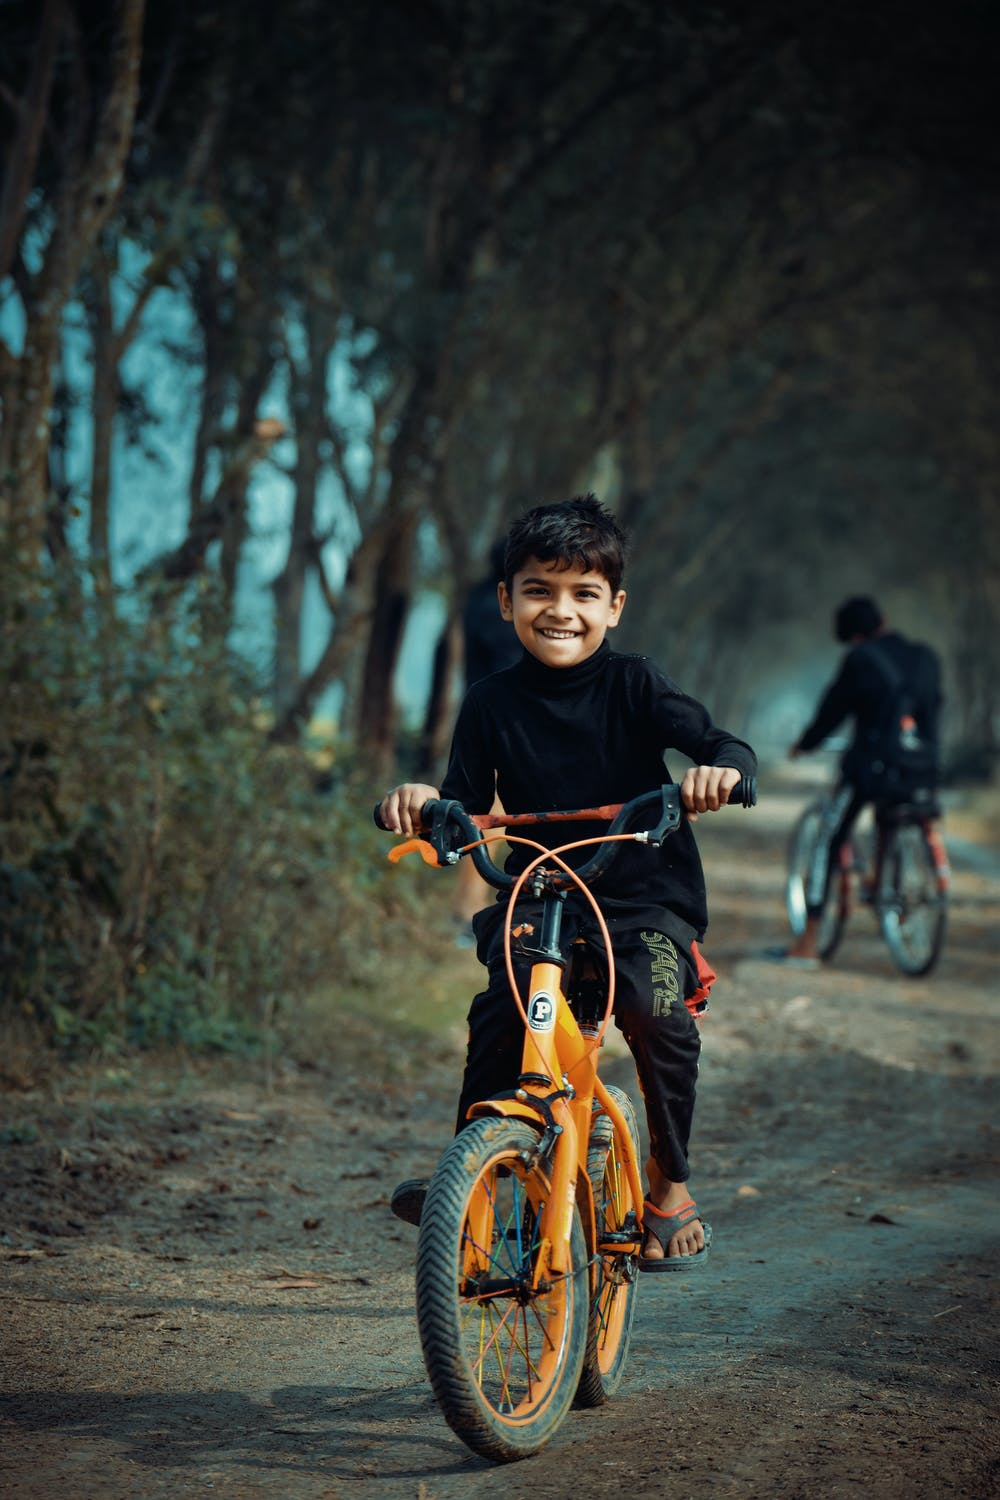 Two boys riding bicycle. | Photo: Pexels